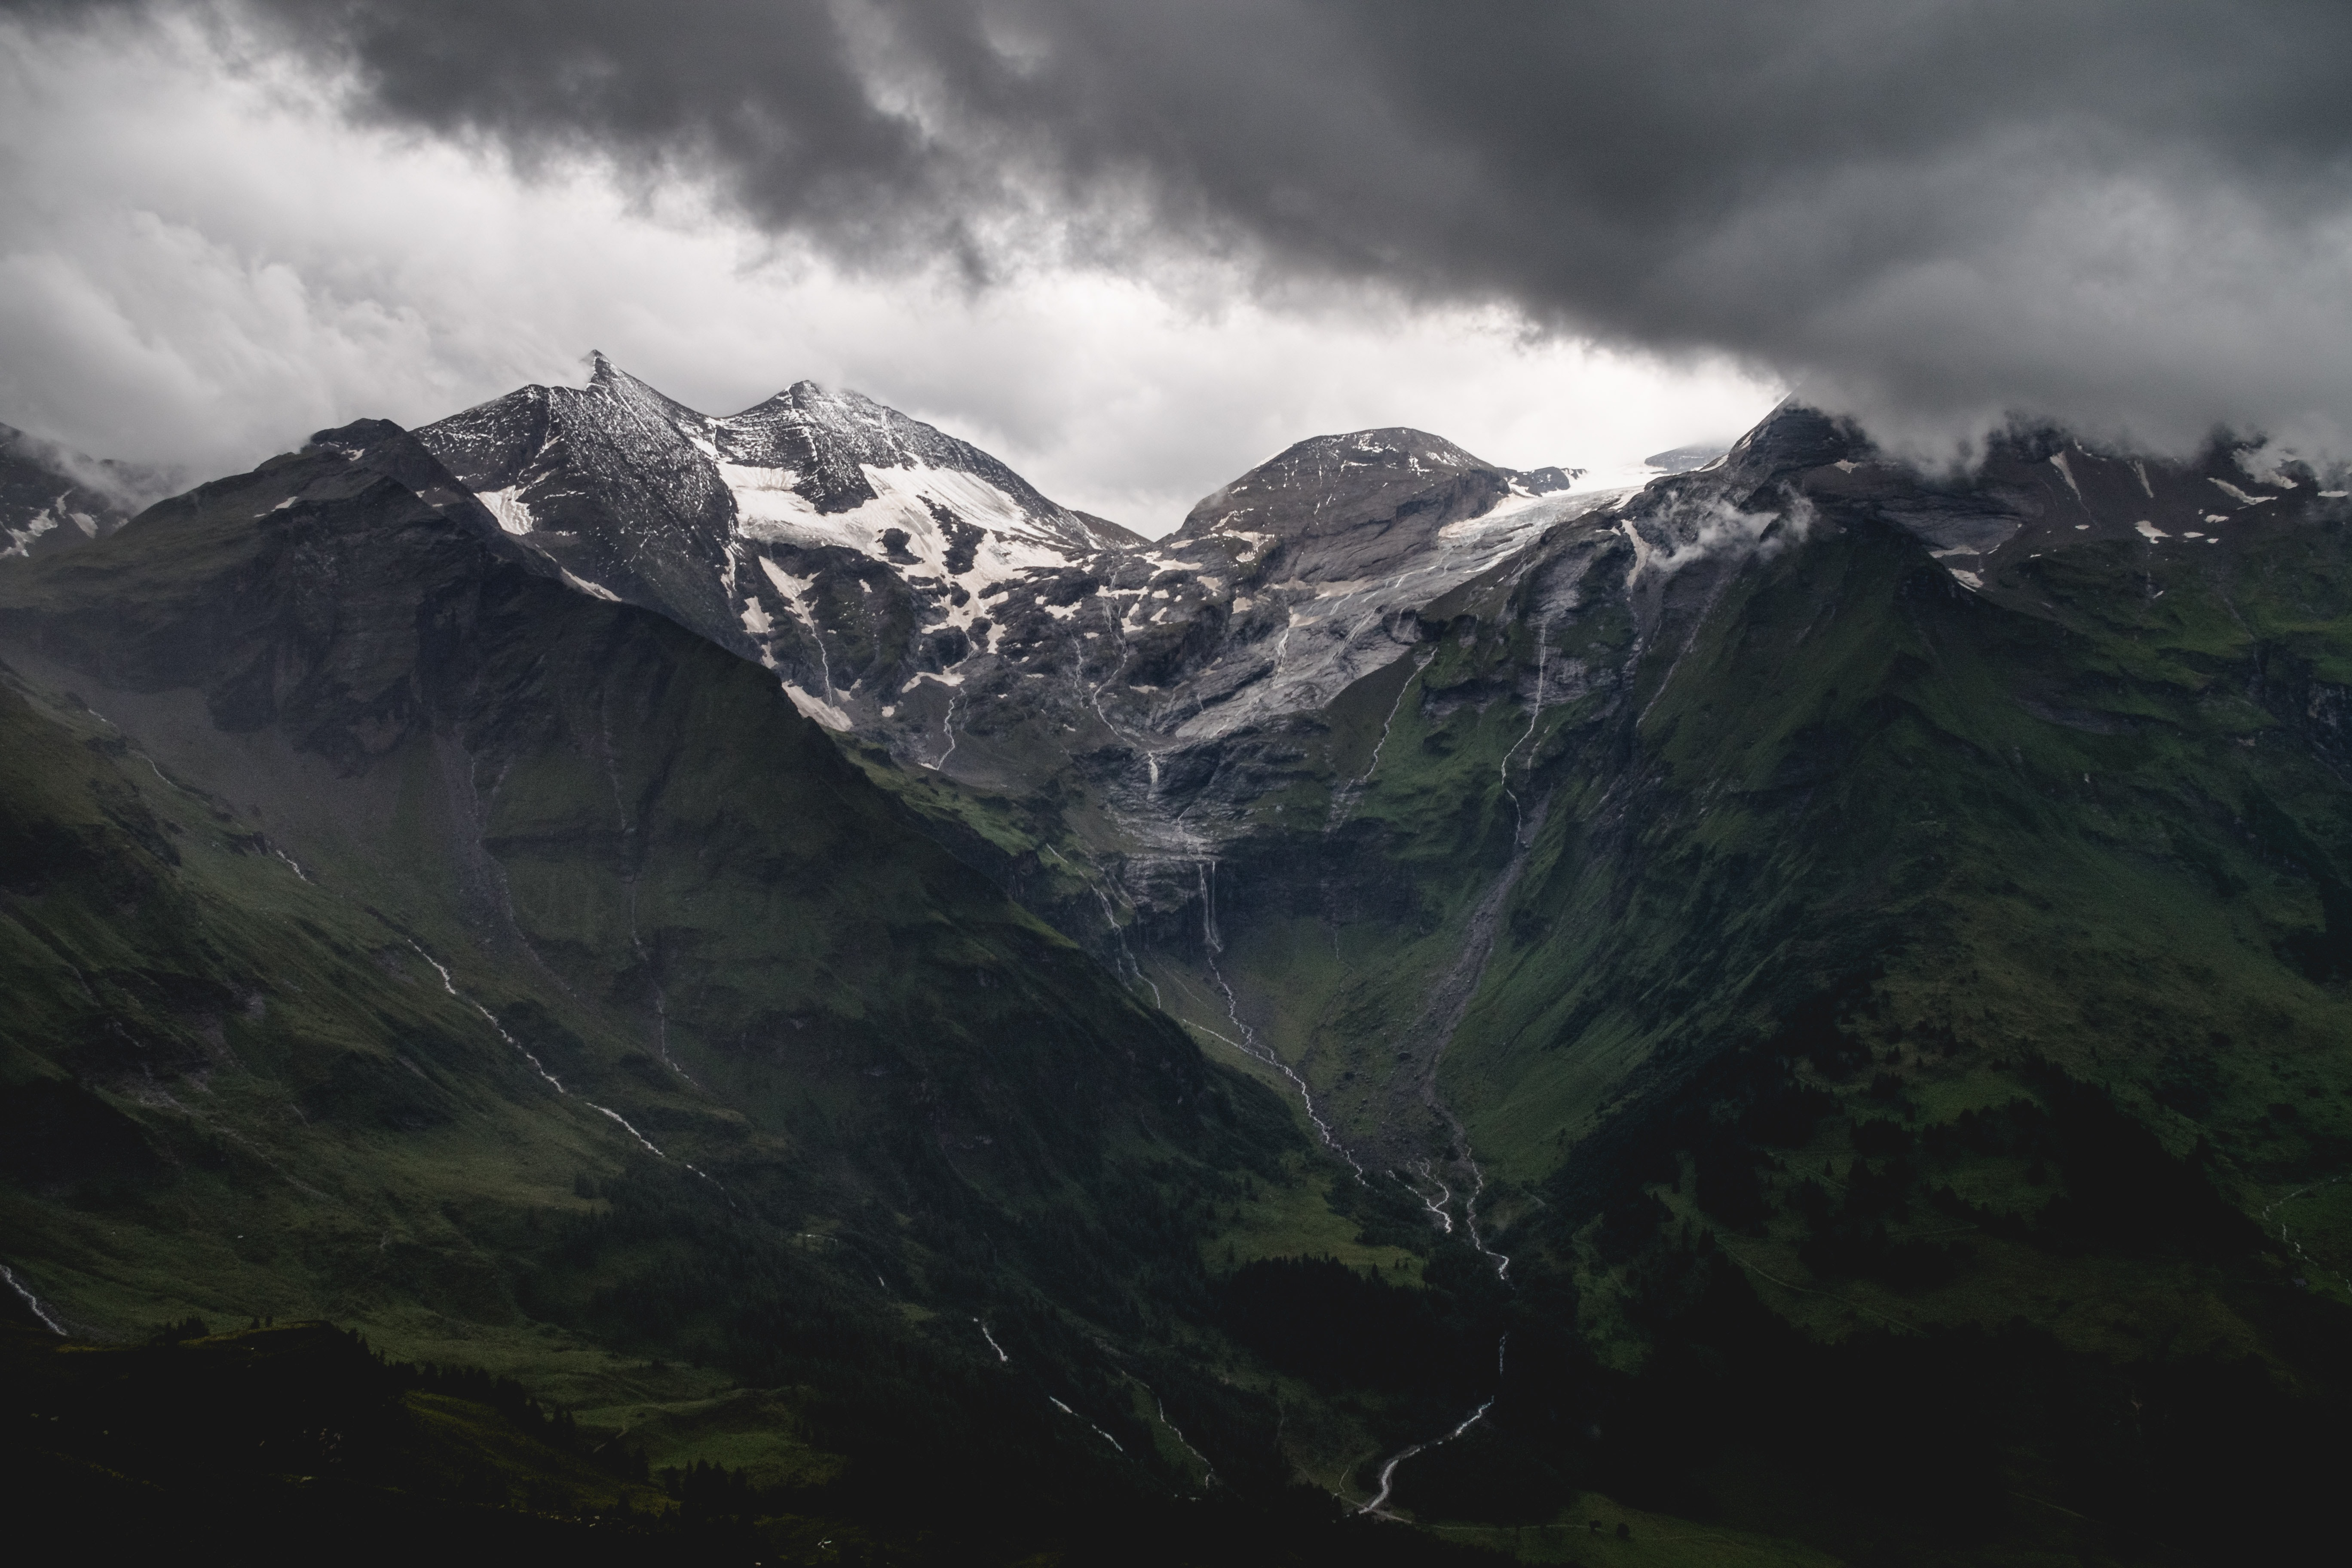 A snow-topped mountain massif near the Grossglockner High Alpine Road